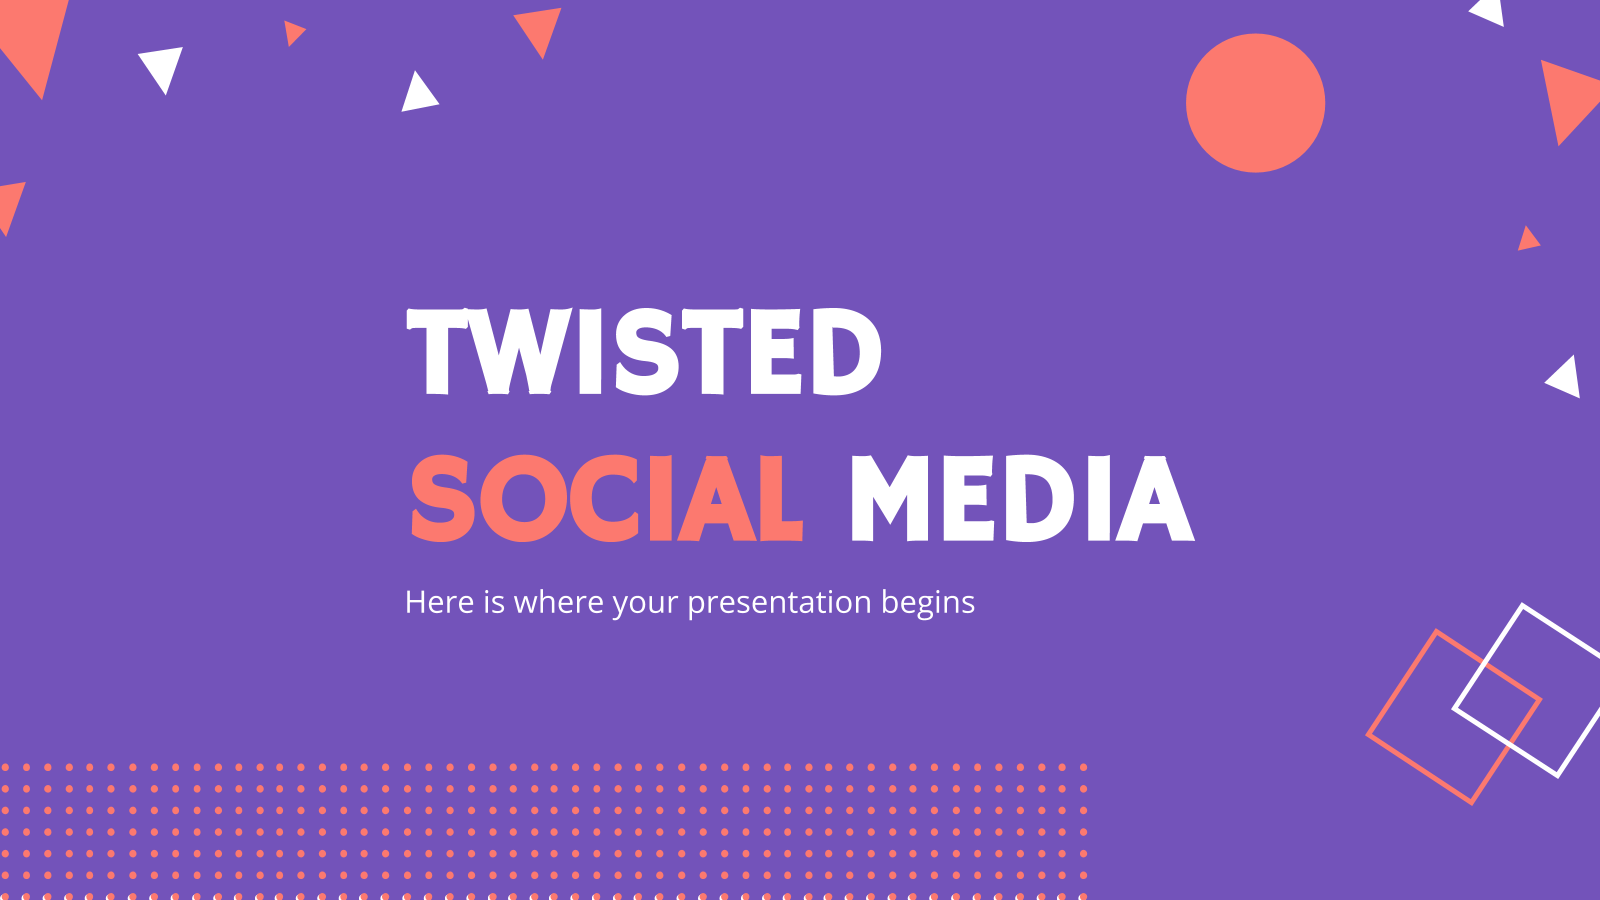 Twisted Social Media presentation template